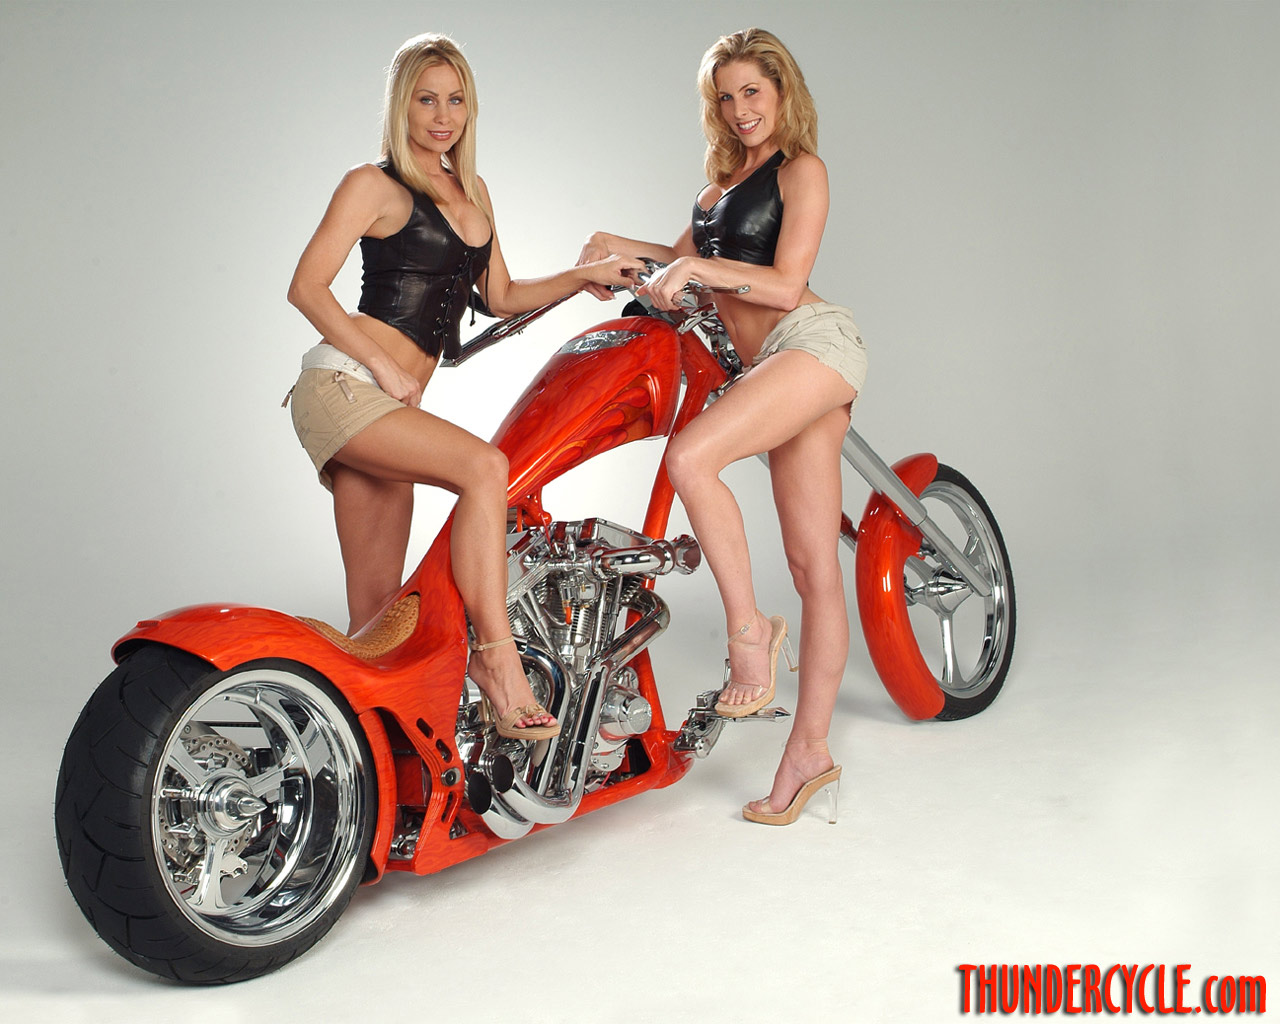 Bike With Babe Wallpapers